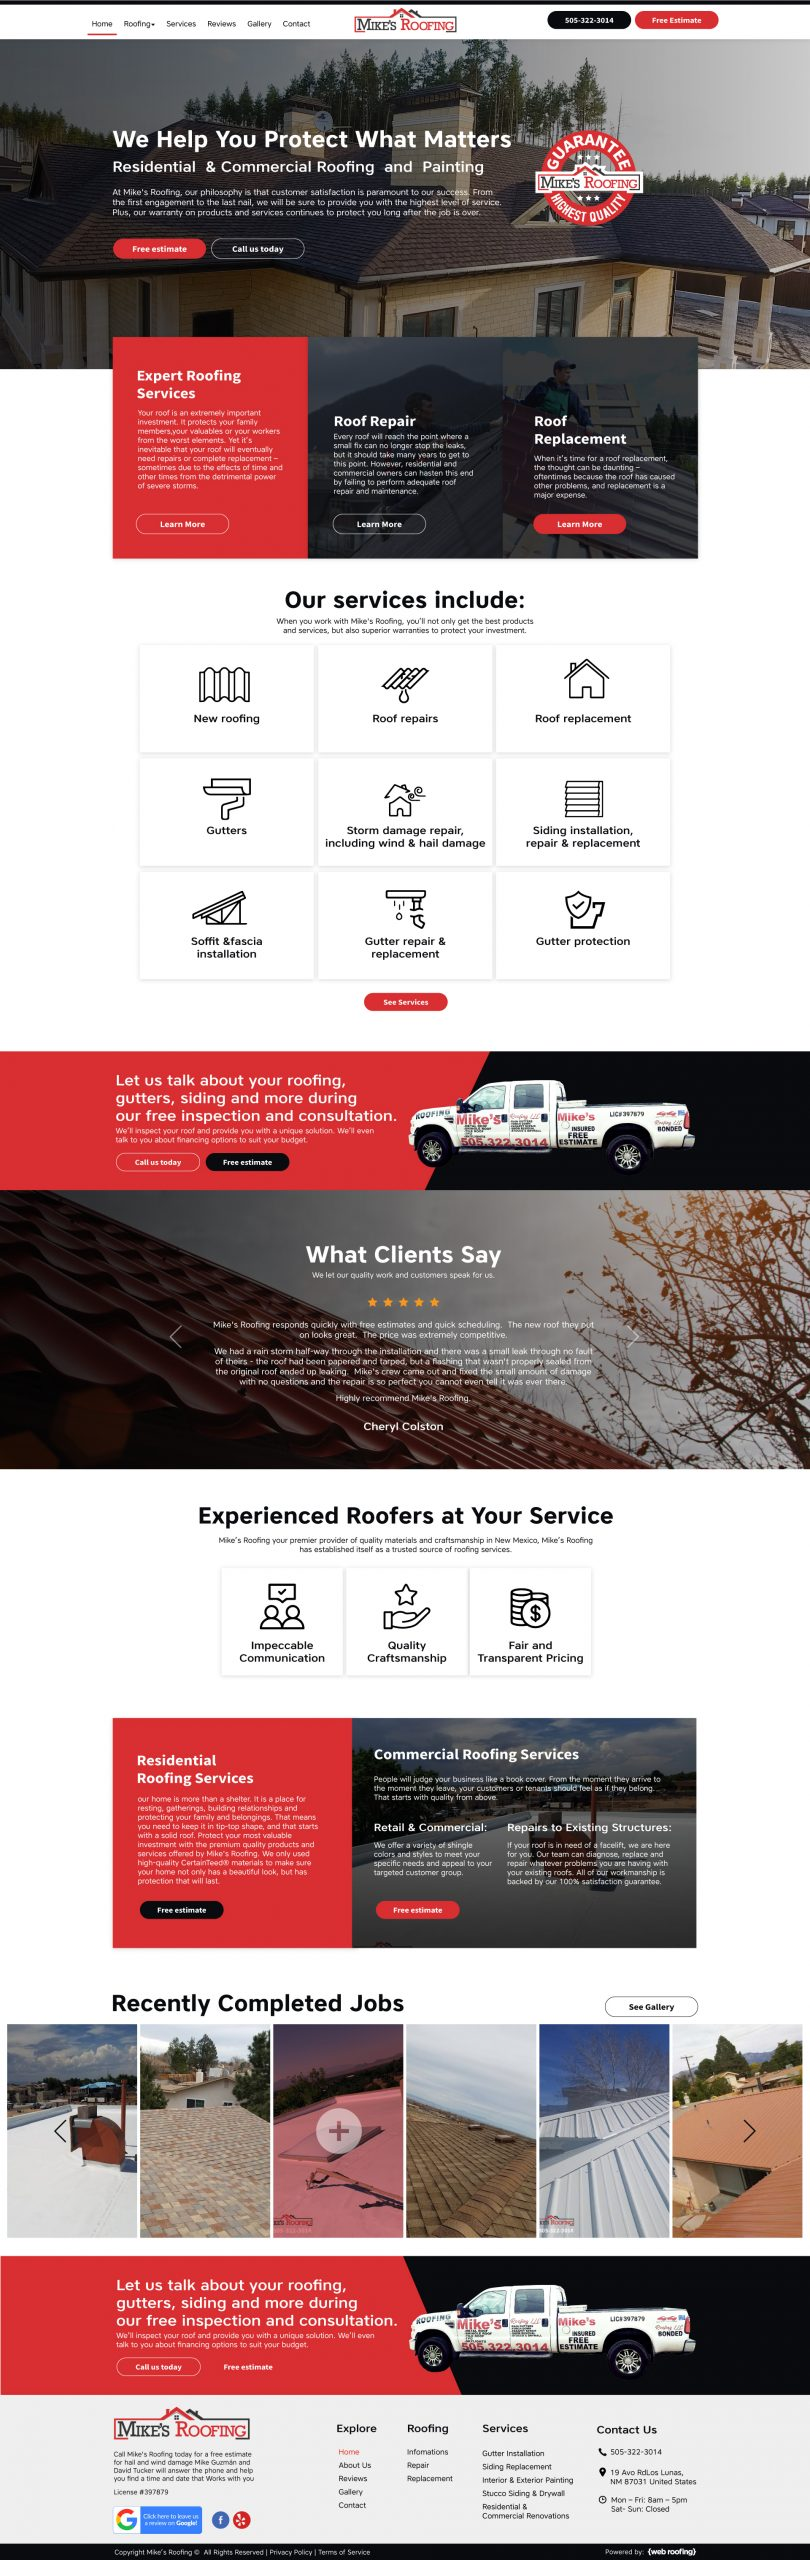 Website design for construction and roofing business